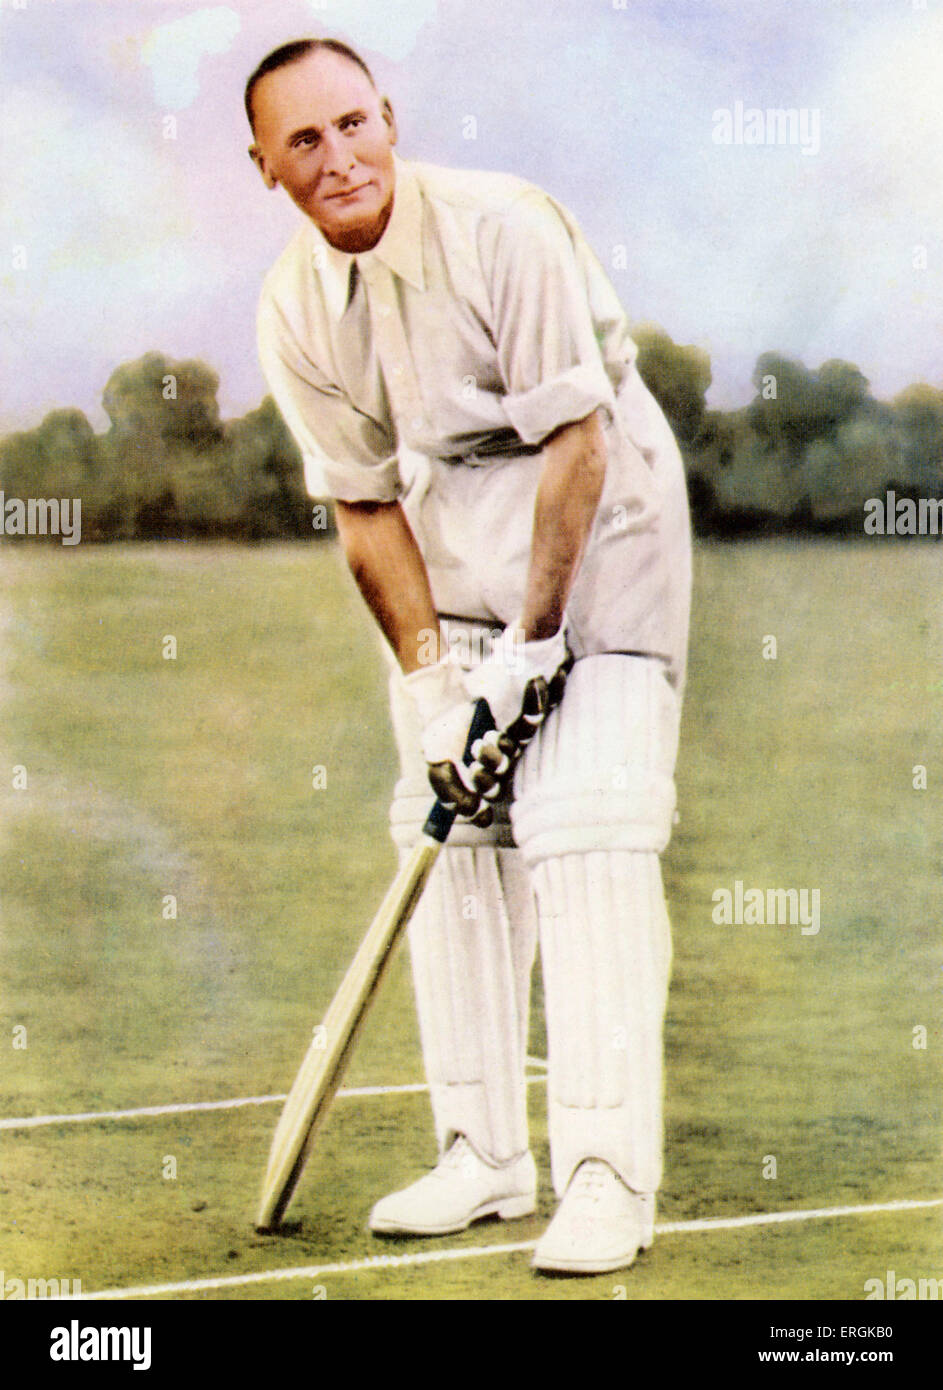 Jack Hobbs (1882-1963). John Berry Hobbs was an English cricketer for Surrey, known as 'The Master' for - Stock Image